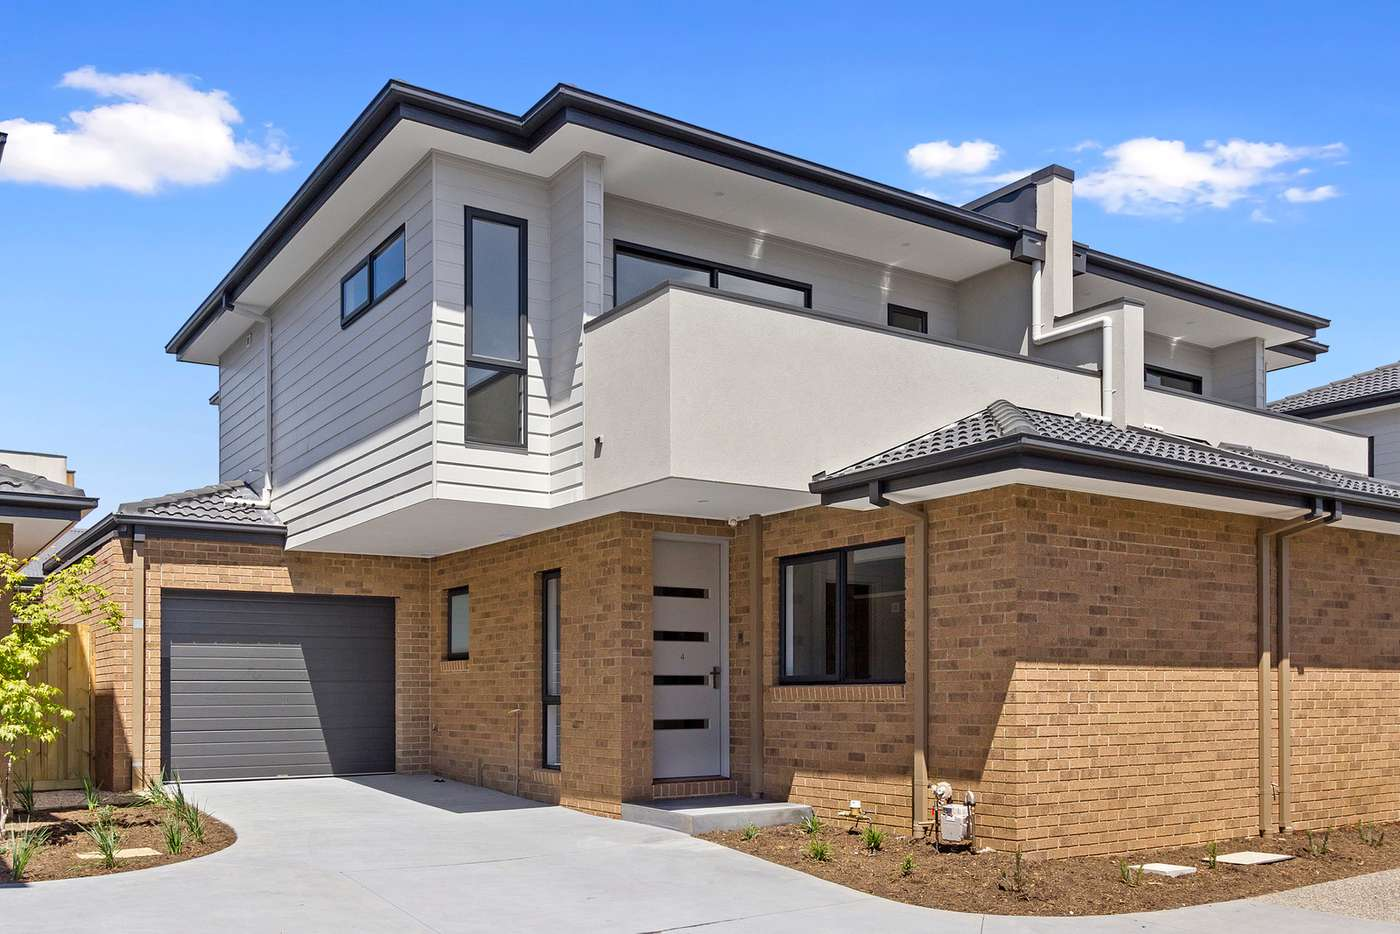 Main view of Homely townhouse listing, 4 Lexi Place, Kilsyth VIC 3137